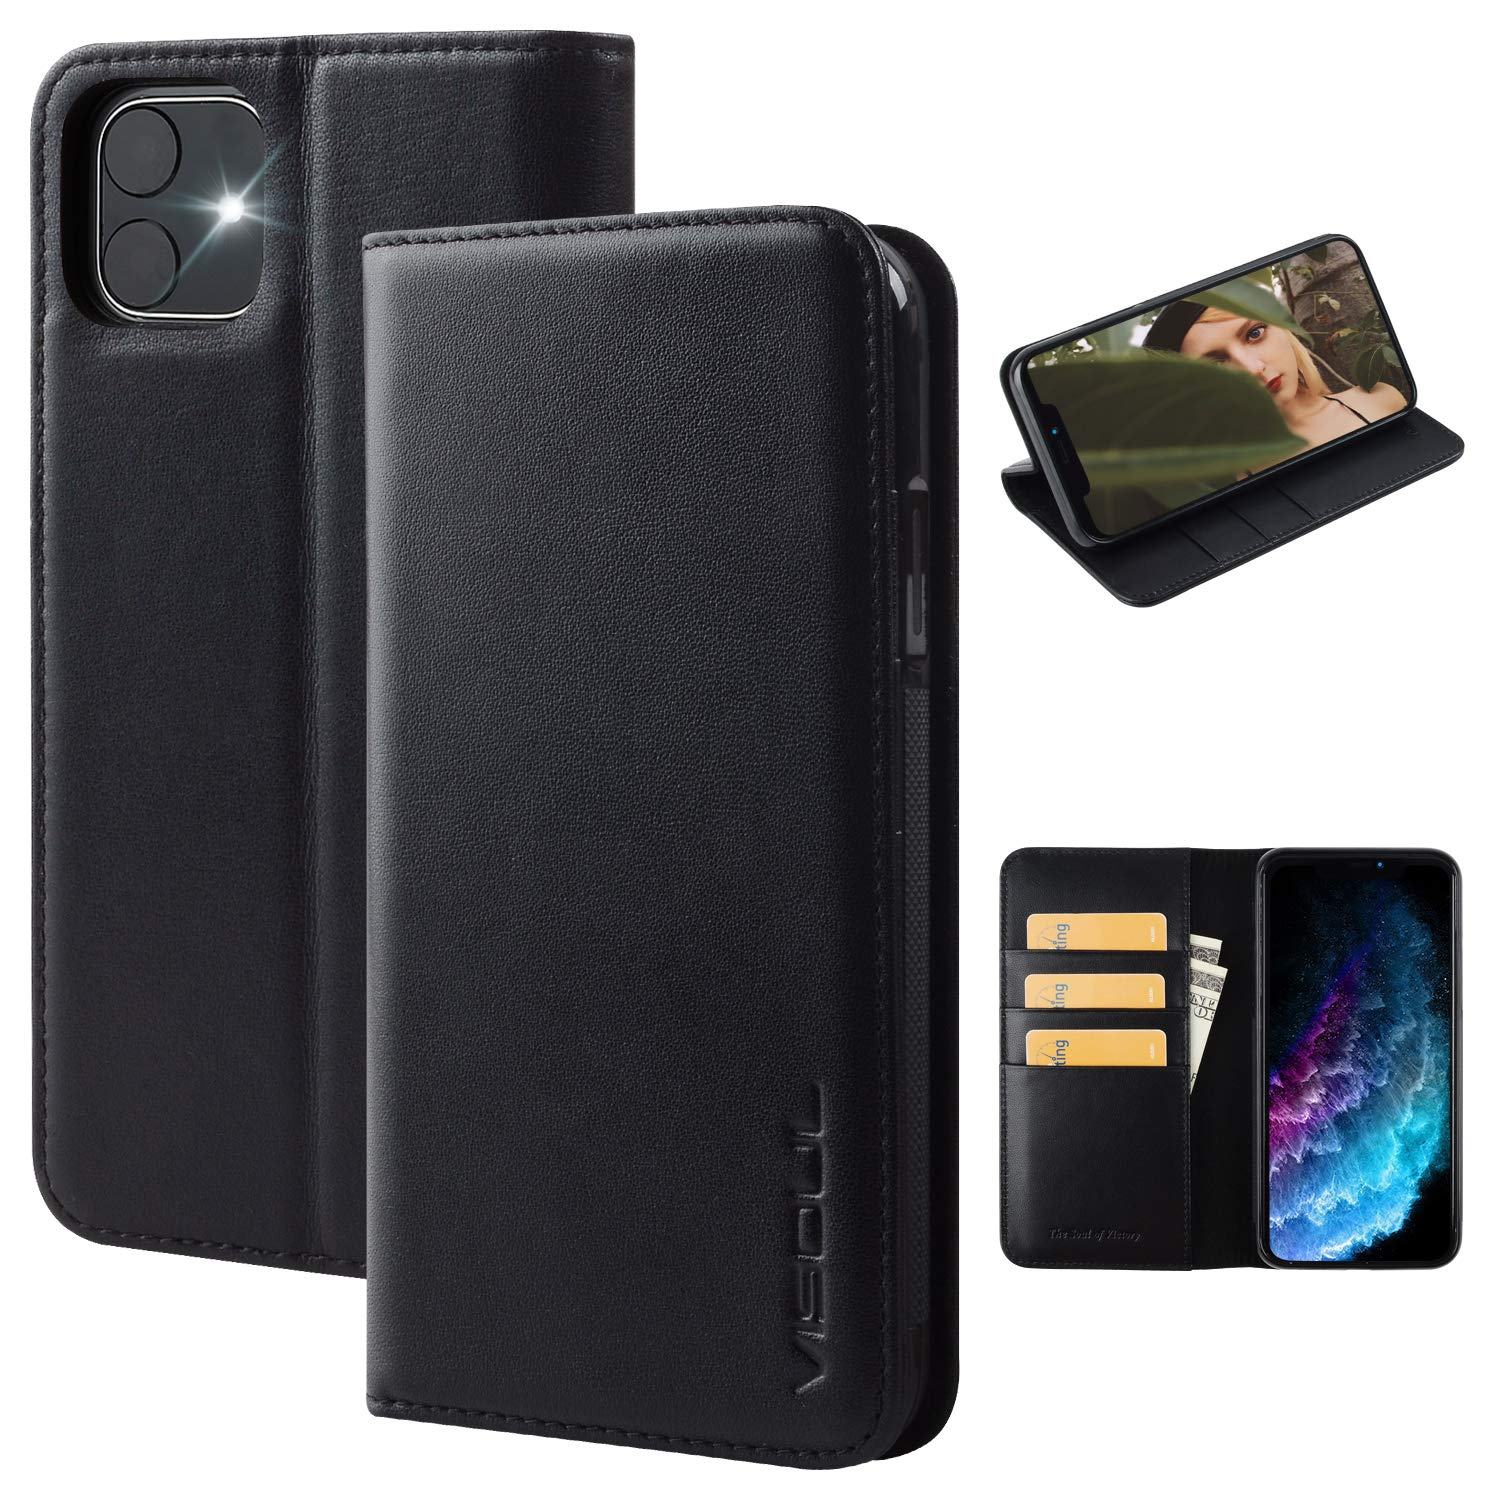 Visoul iPhone 11 Case, Genuine Leather Wallet Case with Magnetic Closure Credit Card Holder Flip Book Design Stand Folio Cover iPhone 11 Wallet Case -Black(6.1inch)